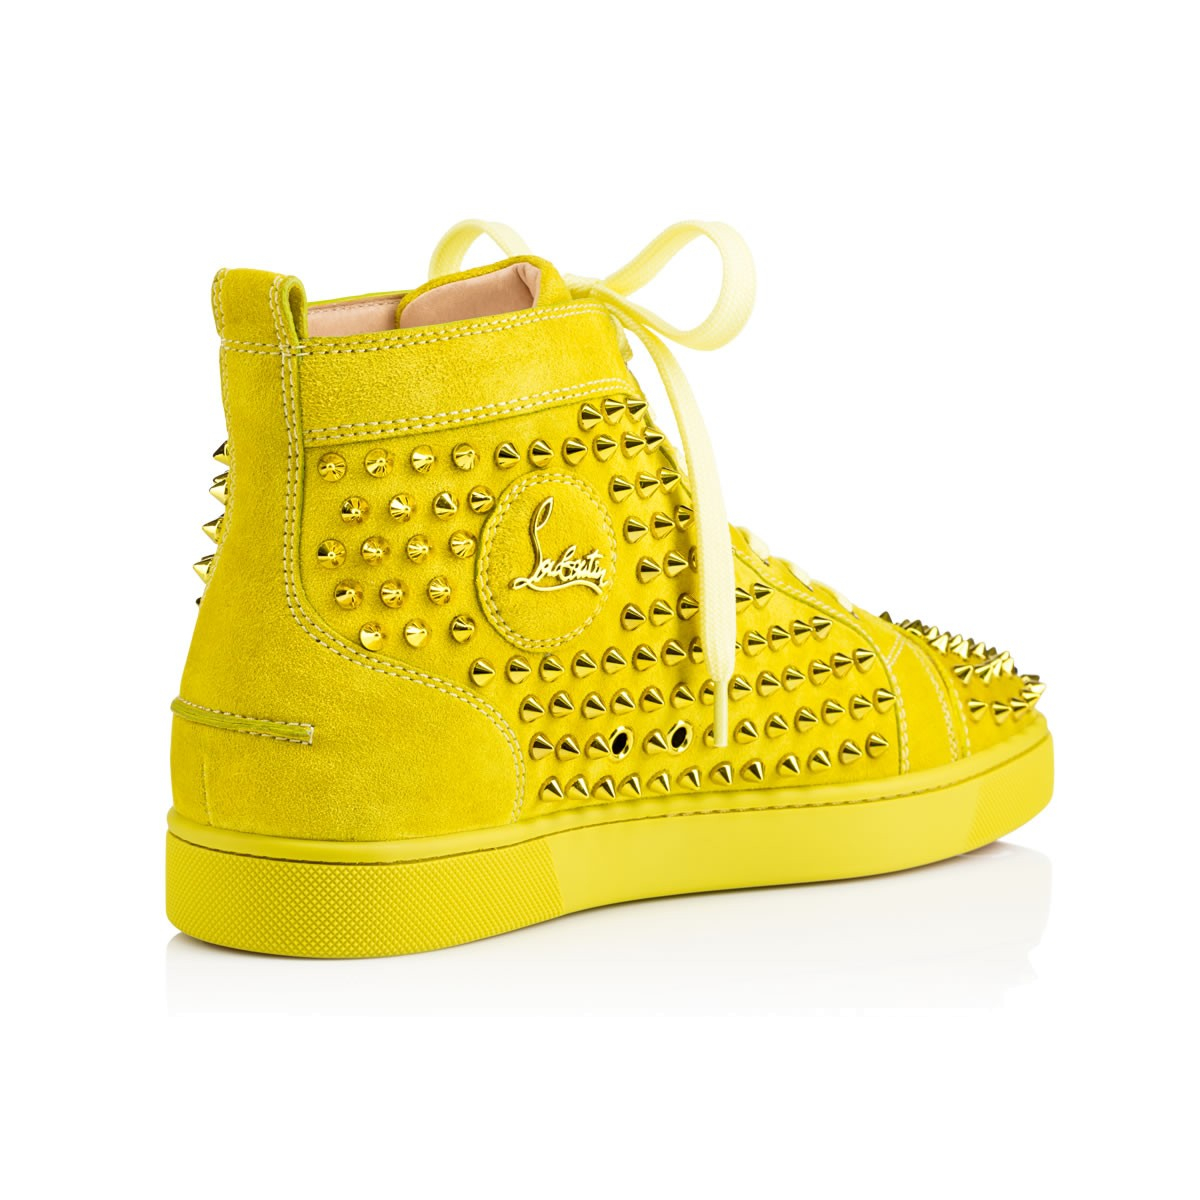 a228a65a9491 Lyst - Christian Louboutin Louis Spikes Men S Flat in Yellow for Men